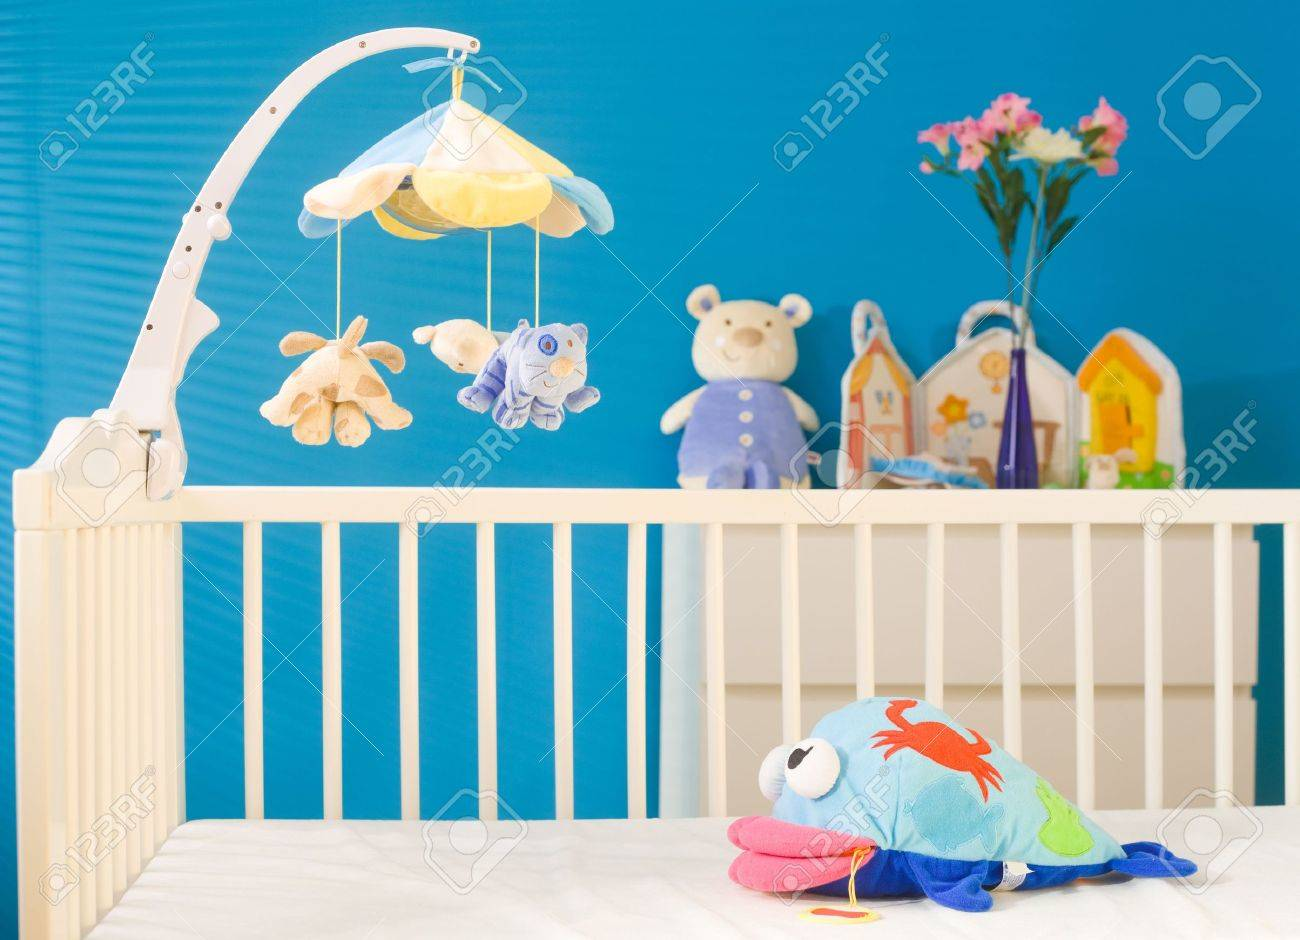 Crib and soft baby toys at children's room. Toys are officially property released. Stock Photo - 3199997